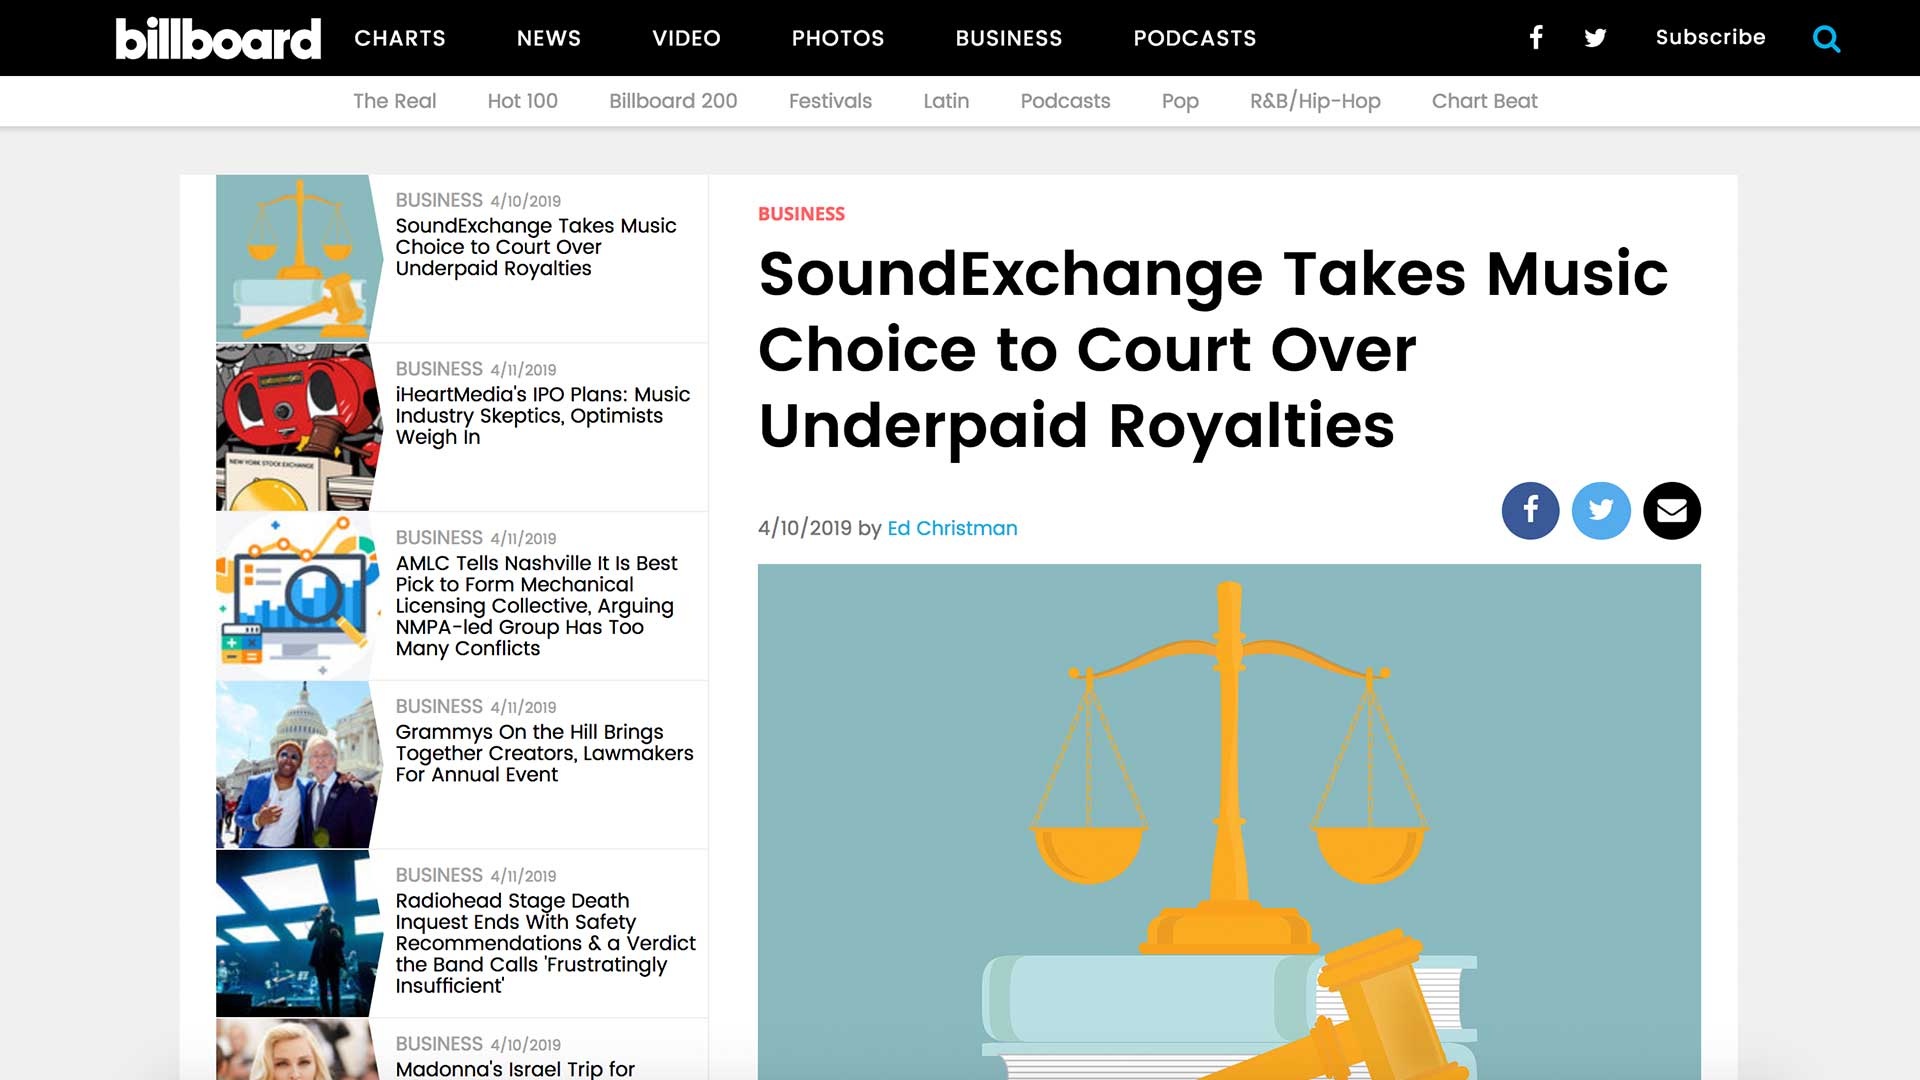 Fairness Rocks News SoundExchange Takes Music Choice to Court Over Underpaid Royalties